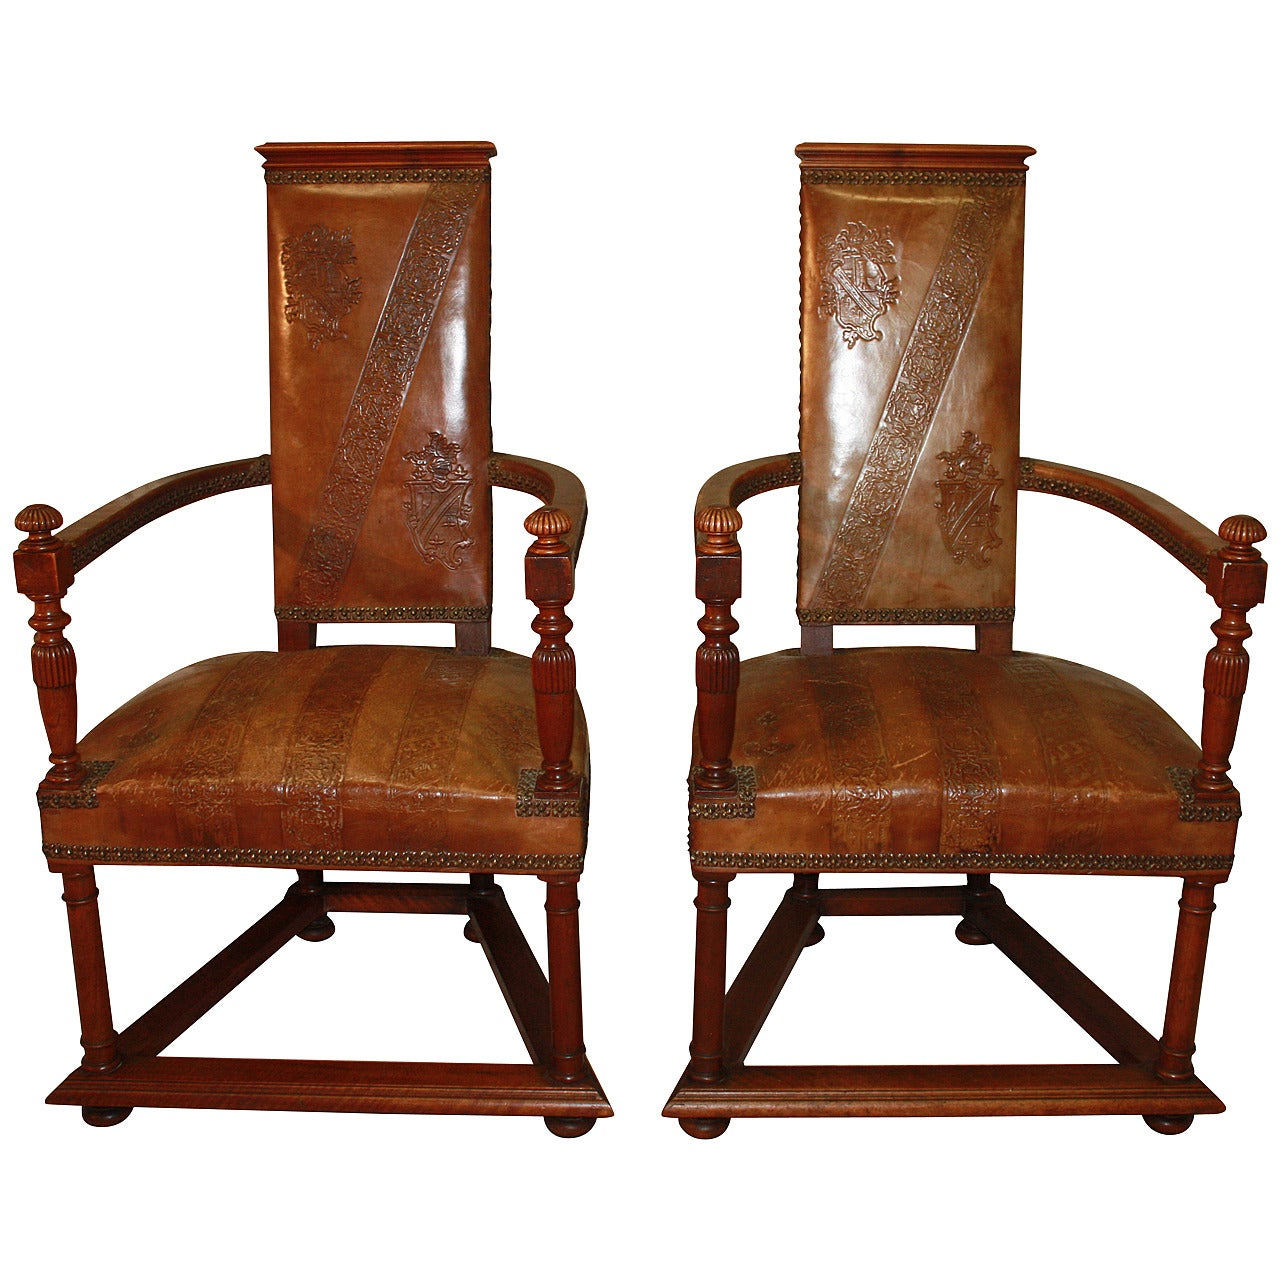 Exceptional Pair of 19th Century French Leather Chairs